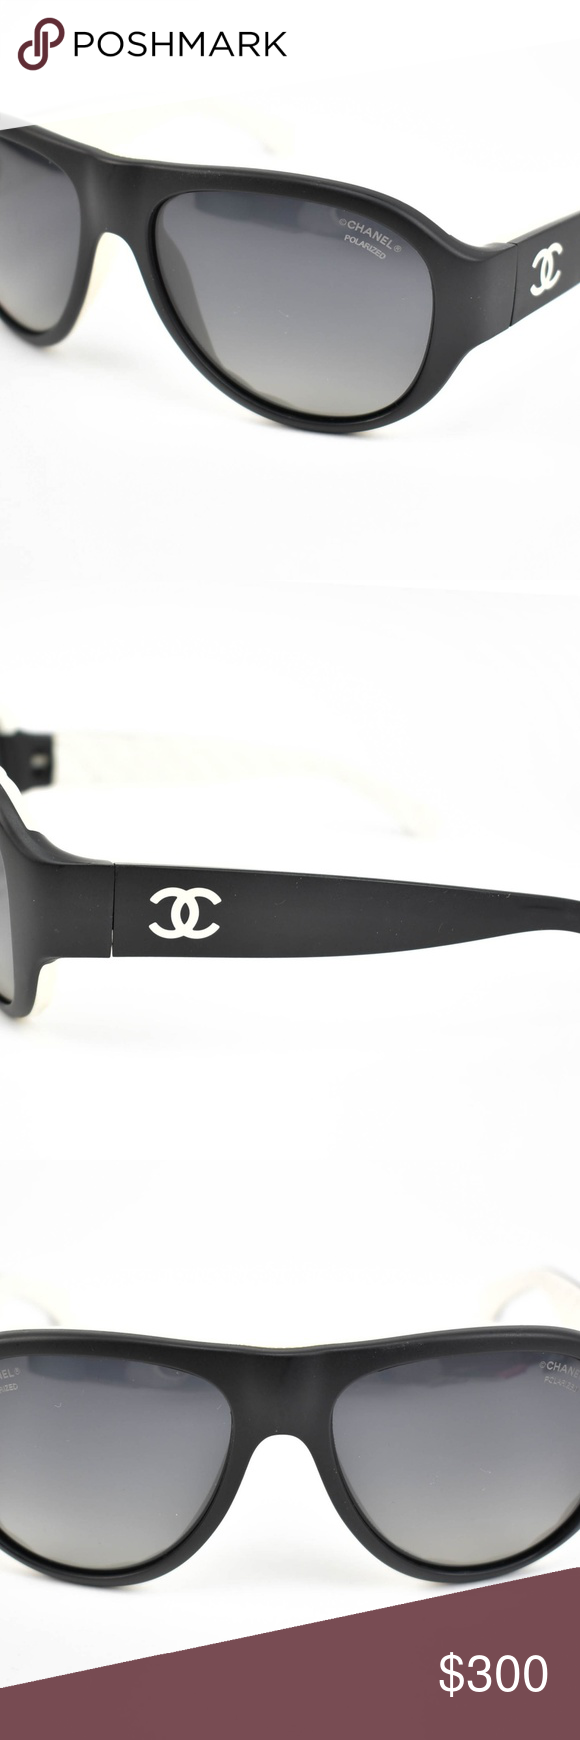 2504b3fcd20 CHANEL Black White CC Logo Mirrored Sunglasses xu pre-owned (zoom photos)